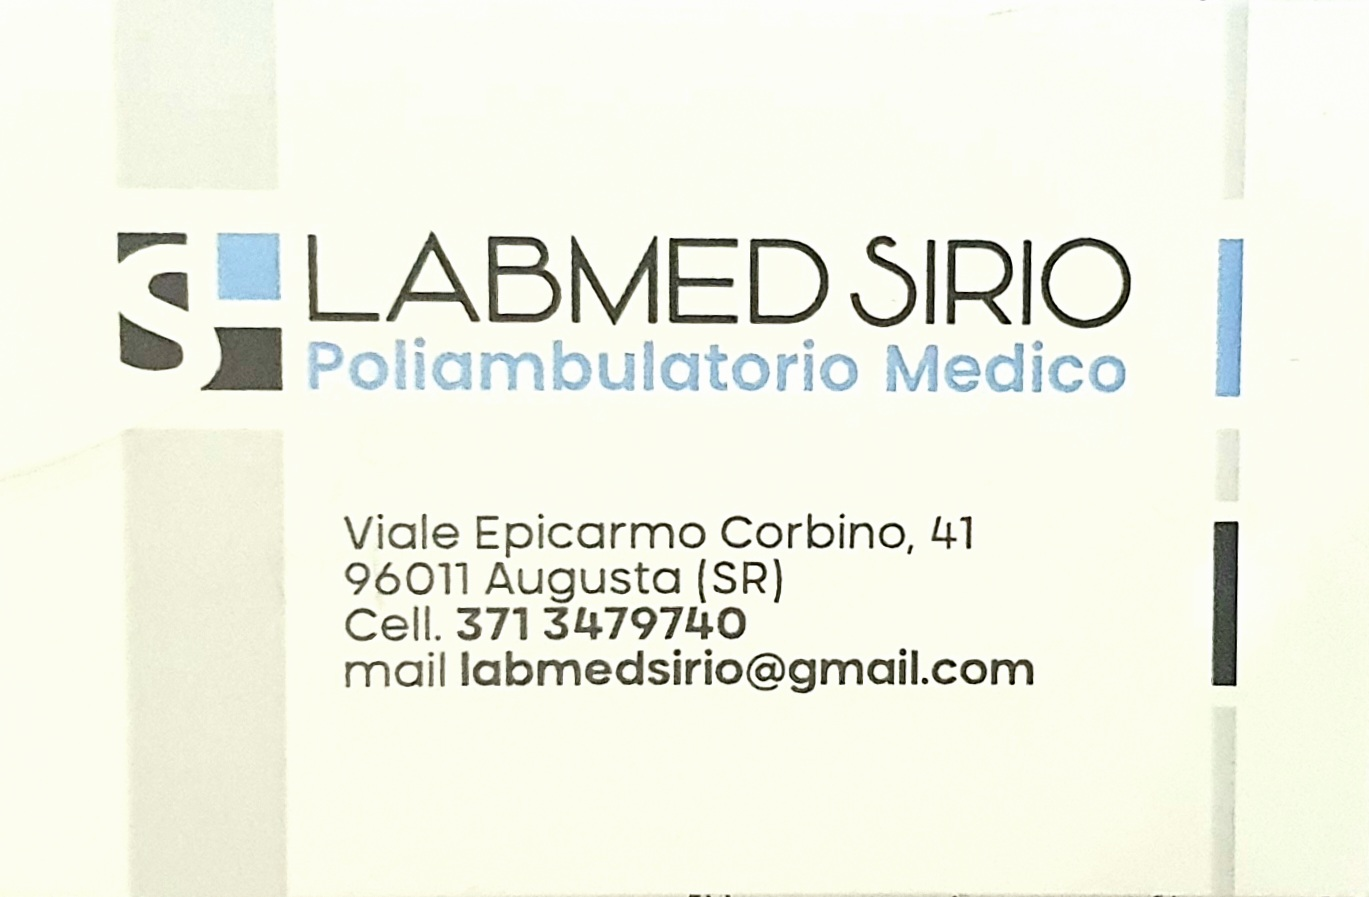 LabMed Sirio - Poliambulatorio